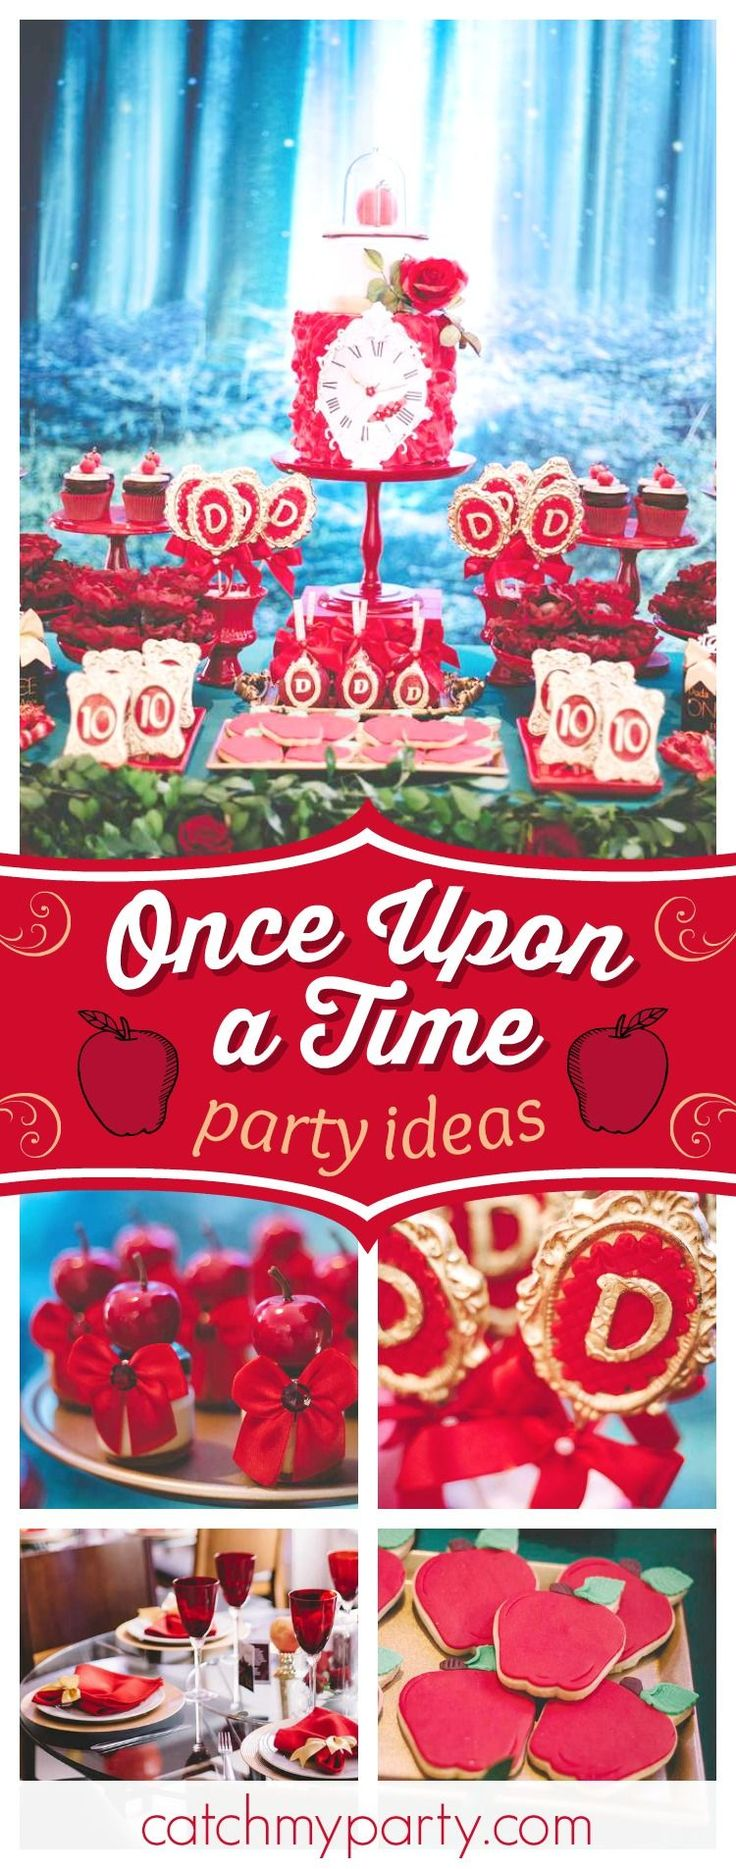 Swoon over this glamorous Once Upon a Time birthday party! The dessert table is stunning!! See your party ideas and share yours at CatchMyParty.com #catchmyparty #onceuponatime #princessbirthdayparty #snowwhite